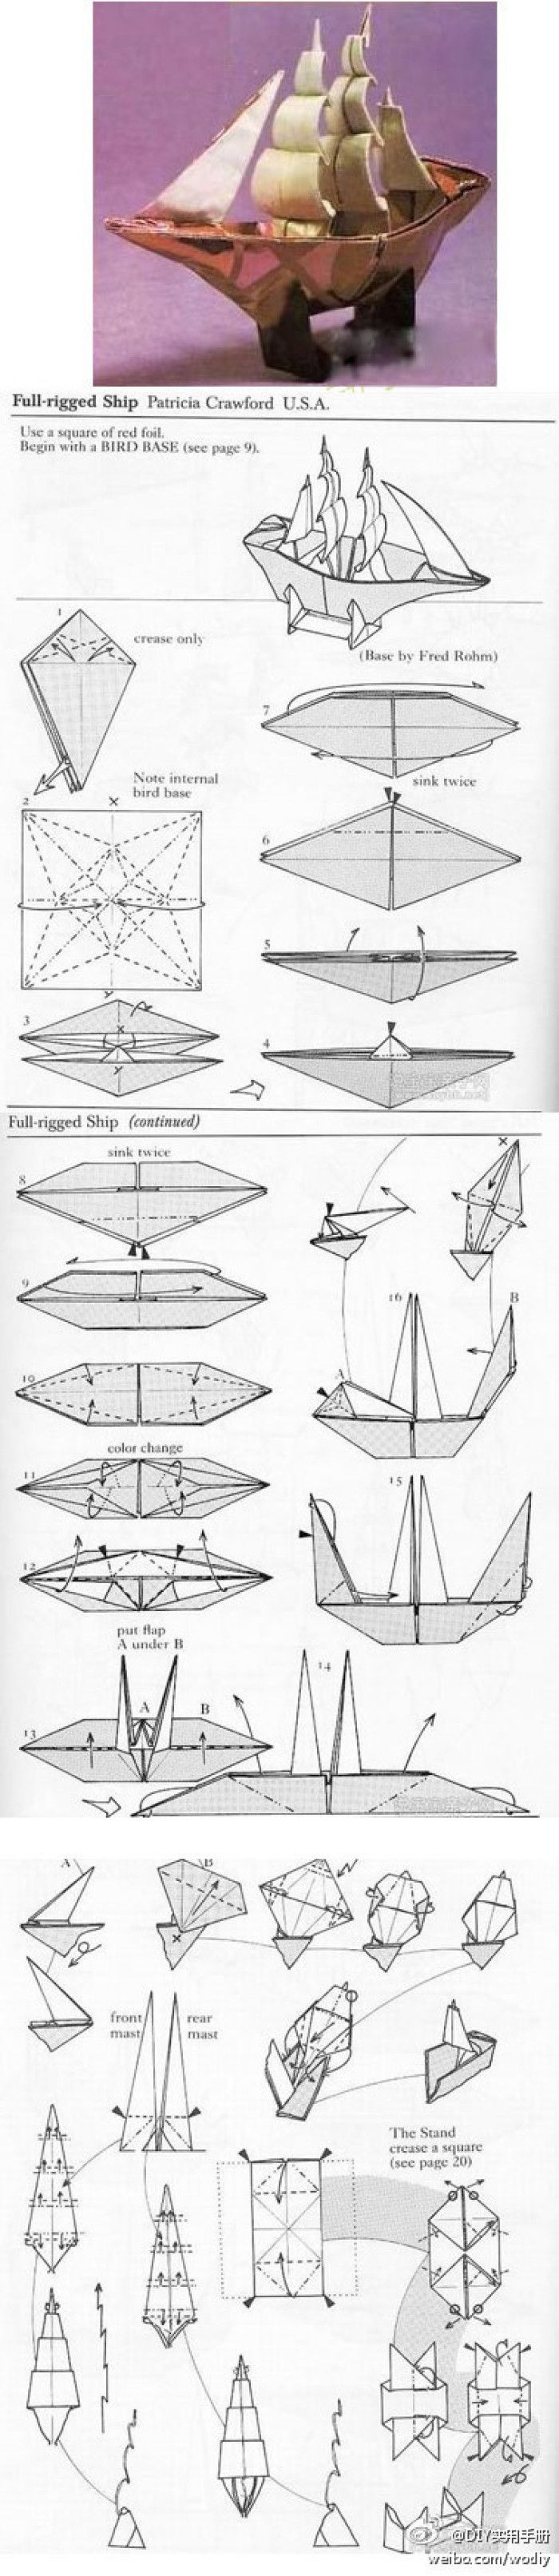 Paper Crafts Pinterest Origami How To Fold An Naboo Starfighter And Other Starships From Star Craft